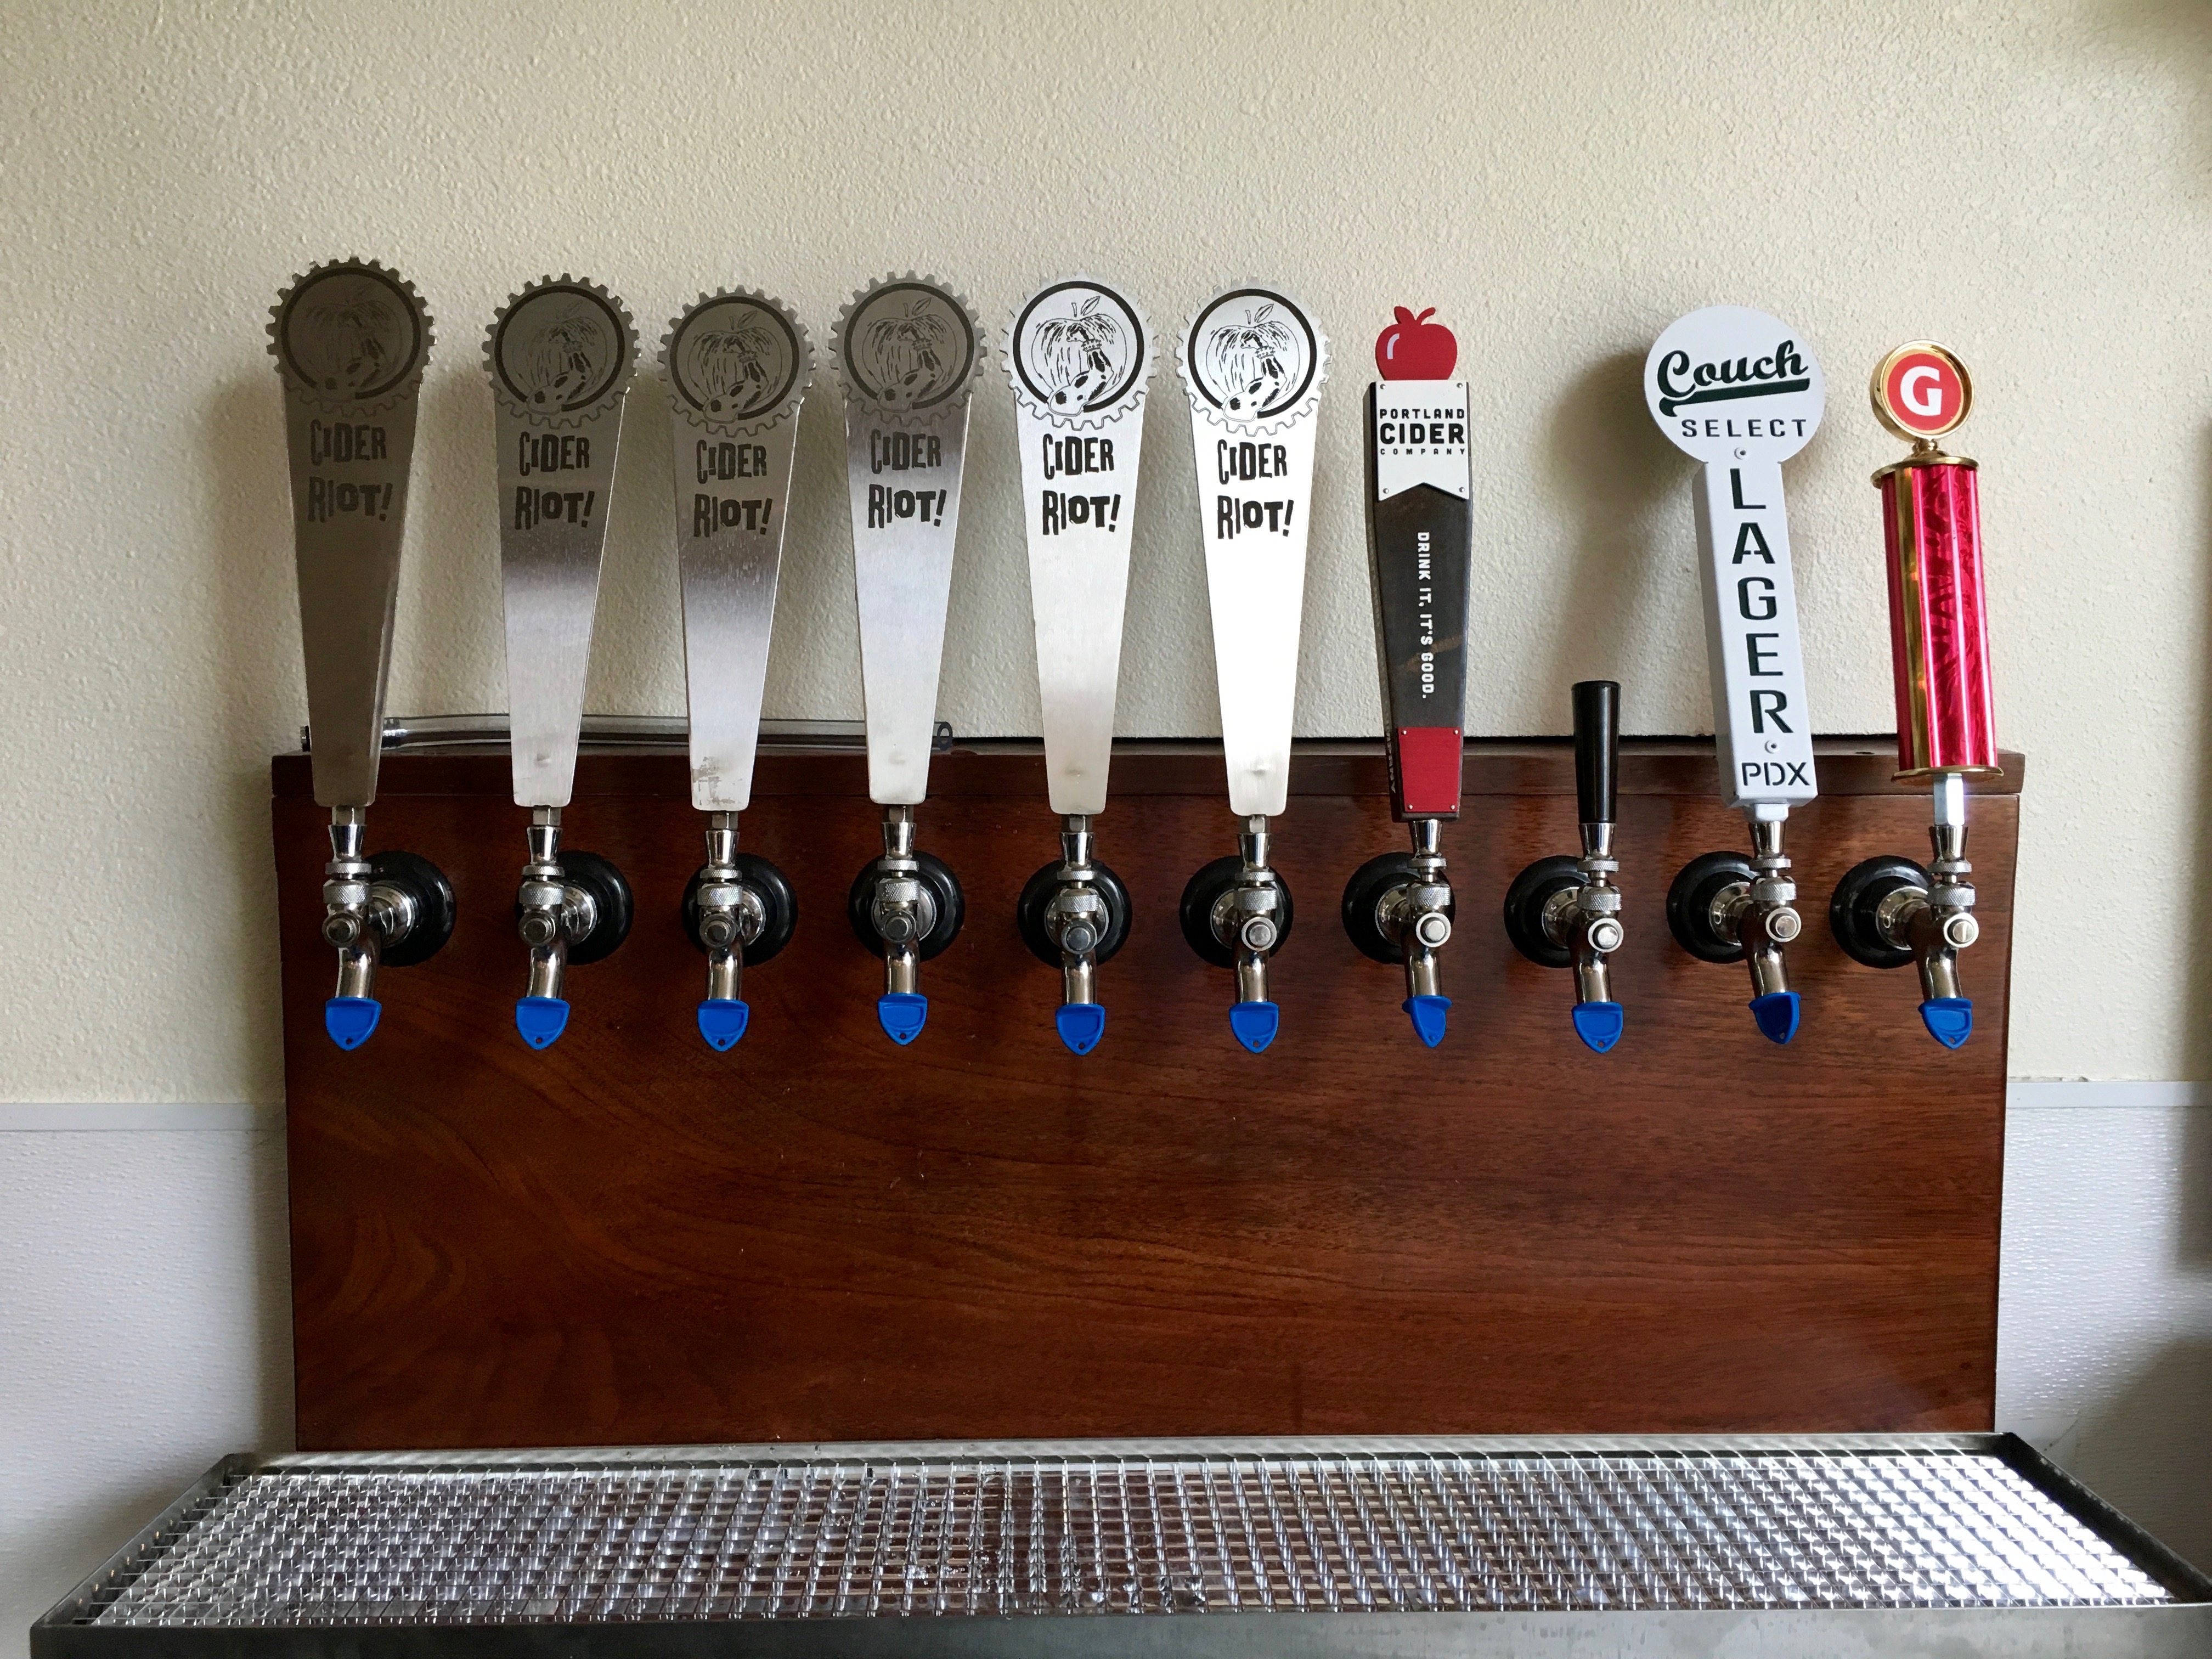 Ten taps at Cider Riot! Pub that includes 8 ciders and two beers.